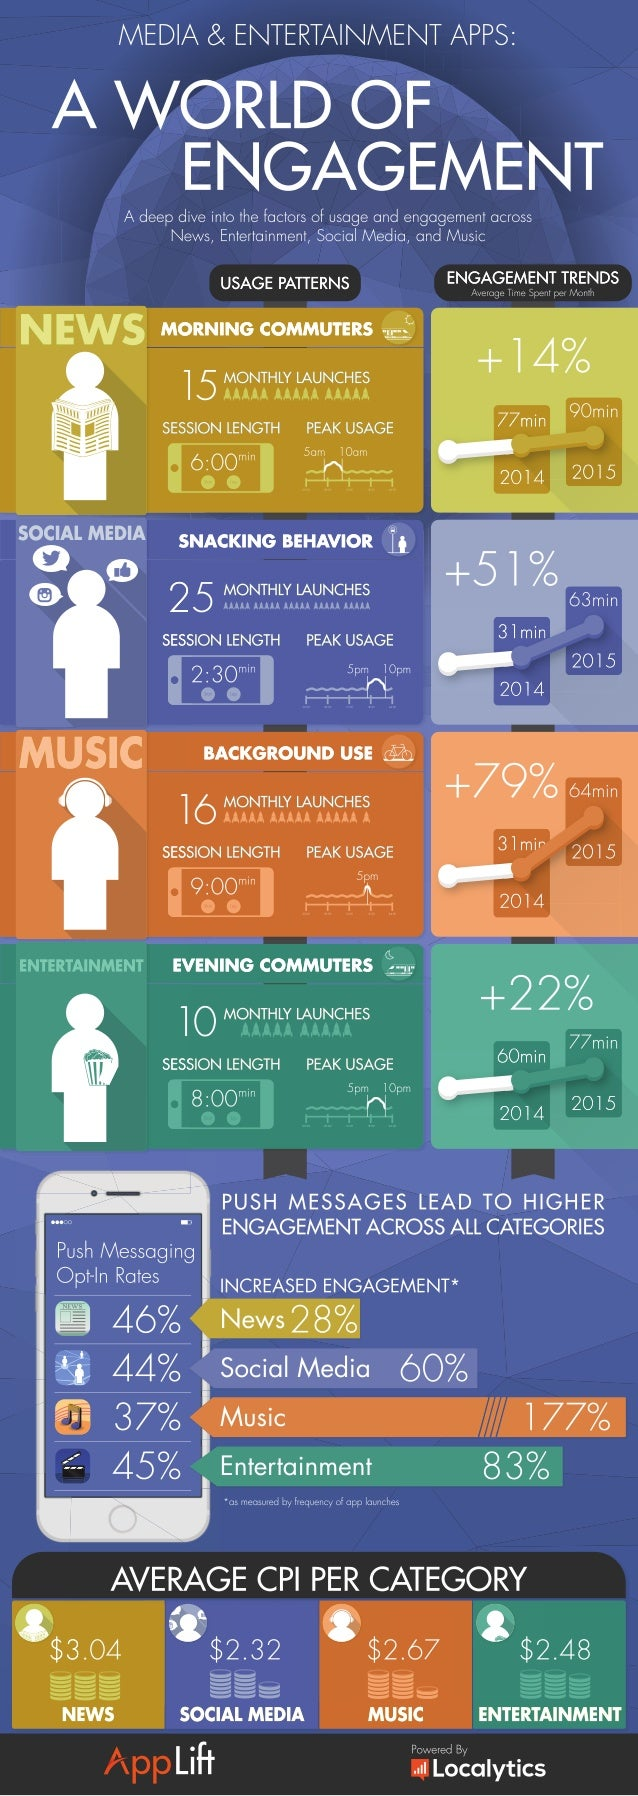 Media & Entertainment Apps: A World of Engagement